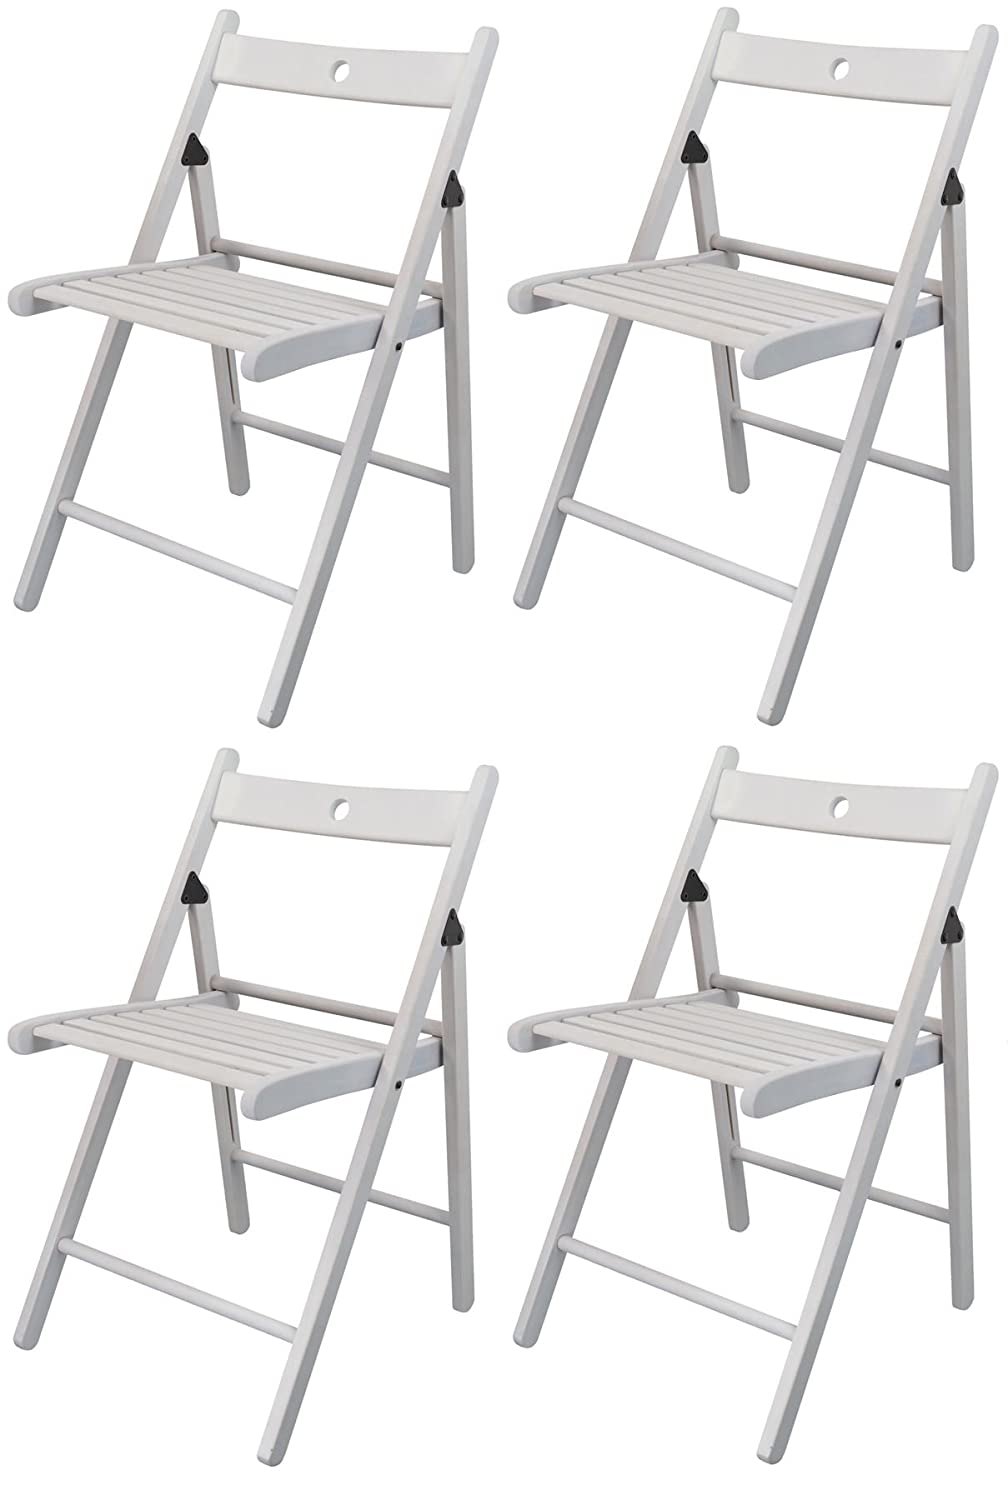 Harbour Housewares Wooden Folding Chairs - White Wood Colour - Pack of 4…